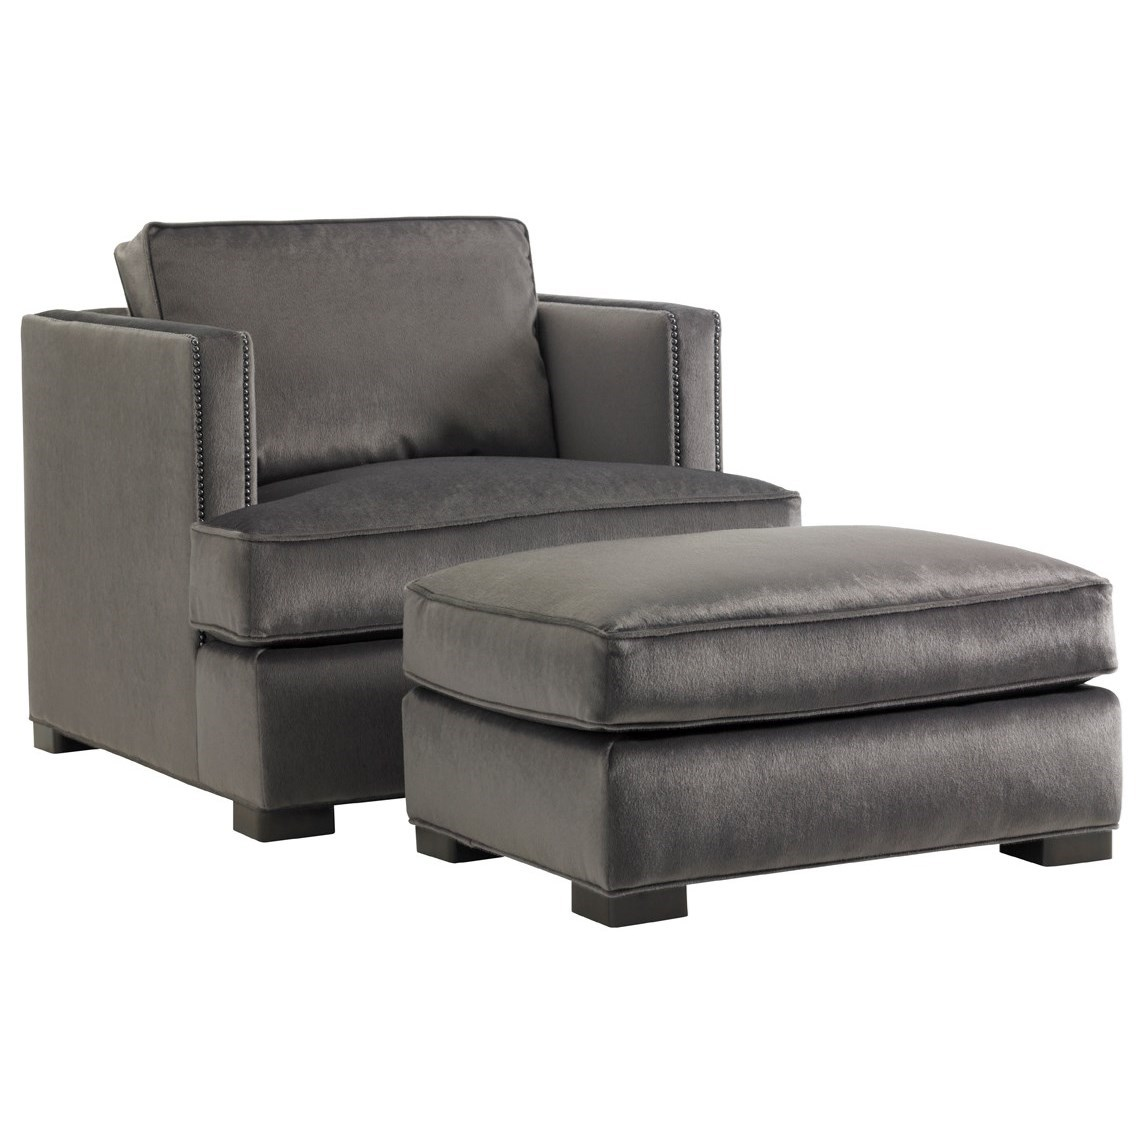 Fillmore Chair and Ottoman